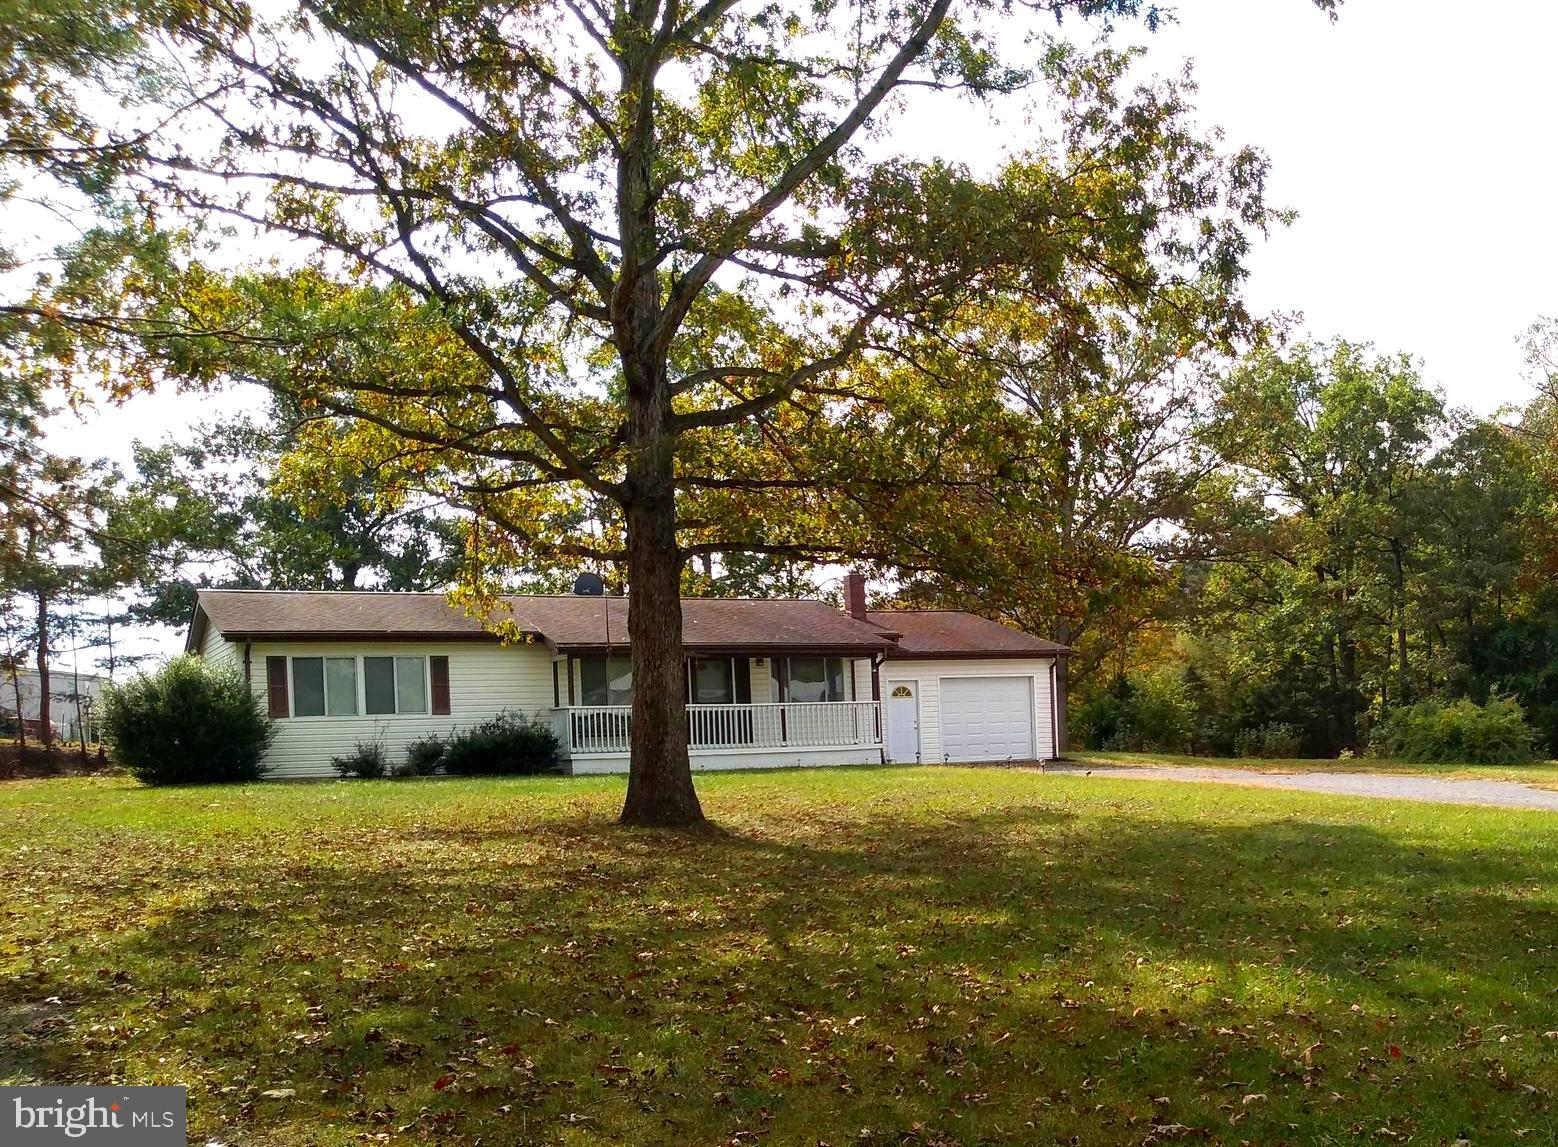 479 FROSTY HOLLOW RD, FISHER, WV 26818